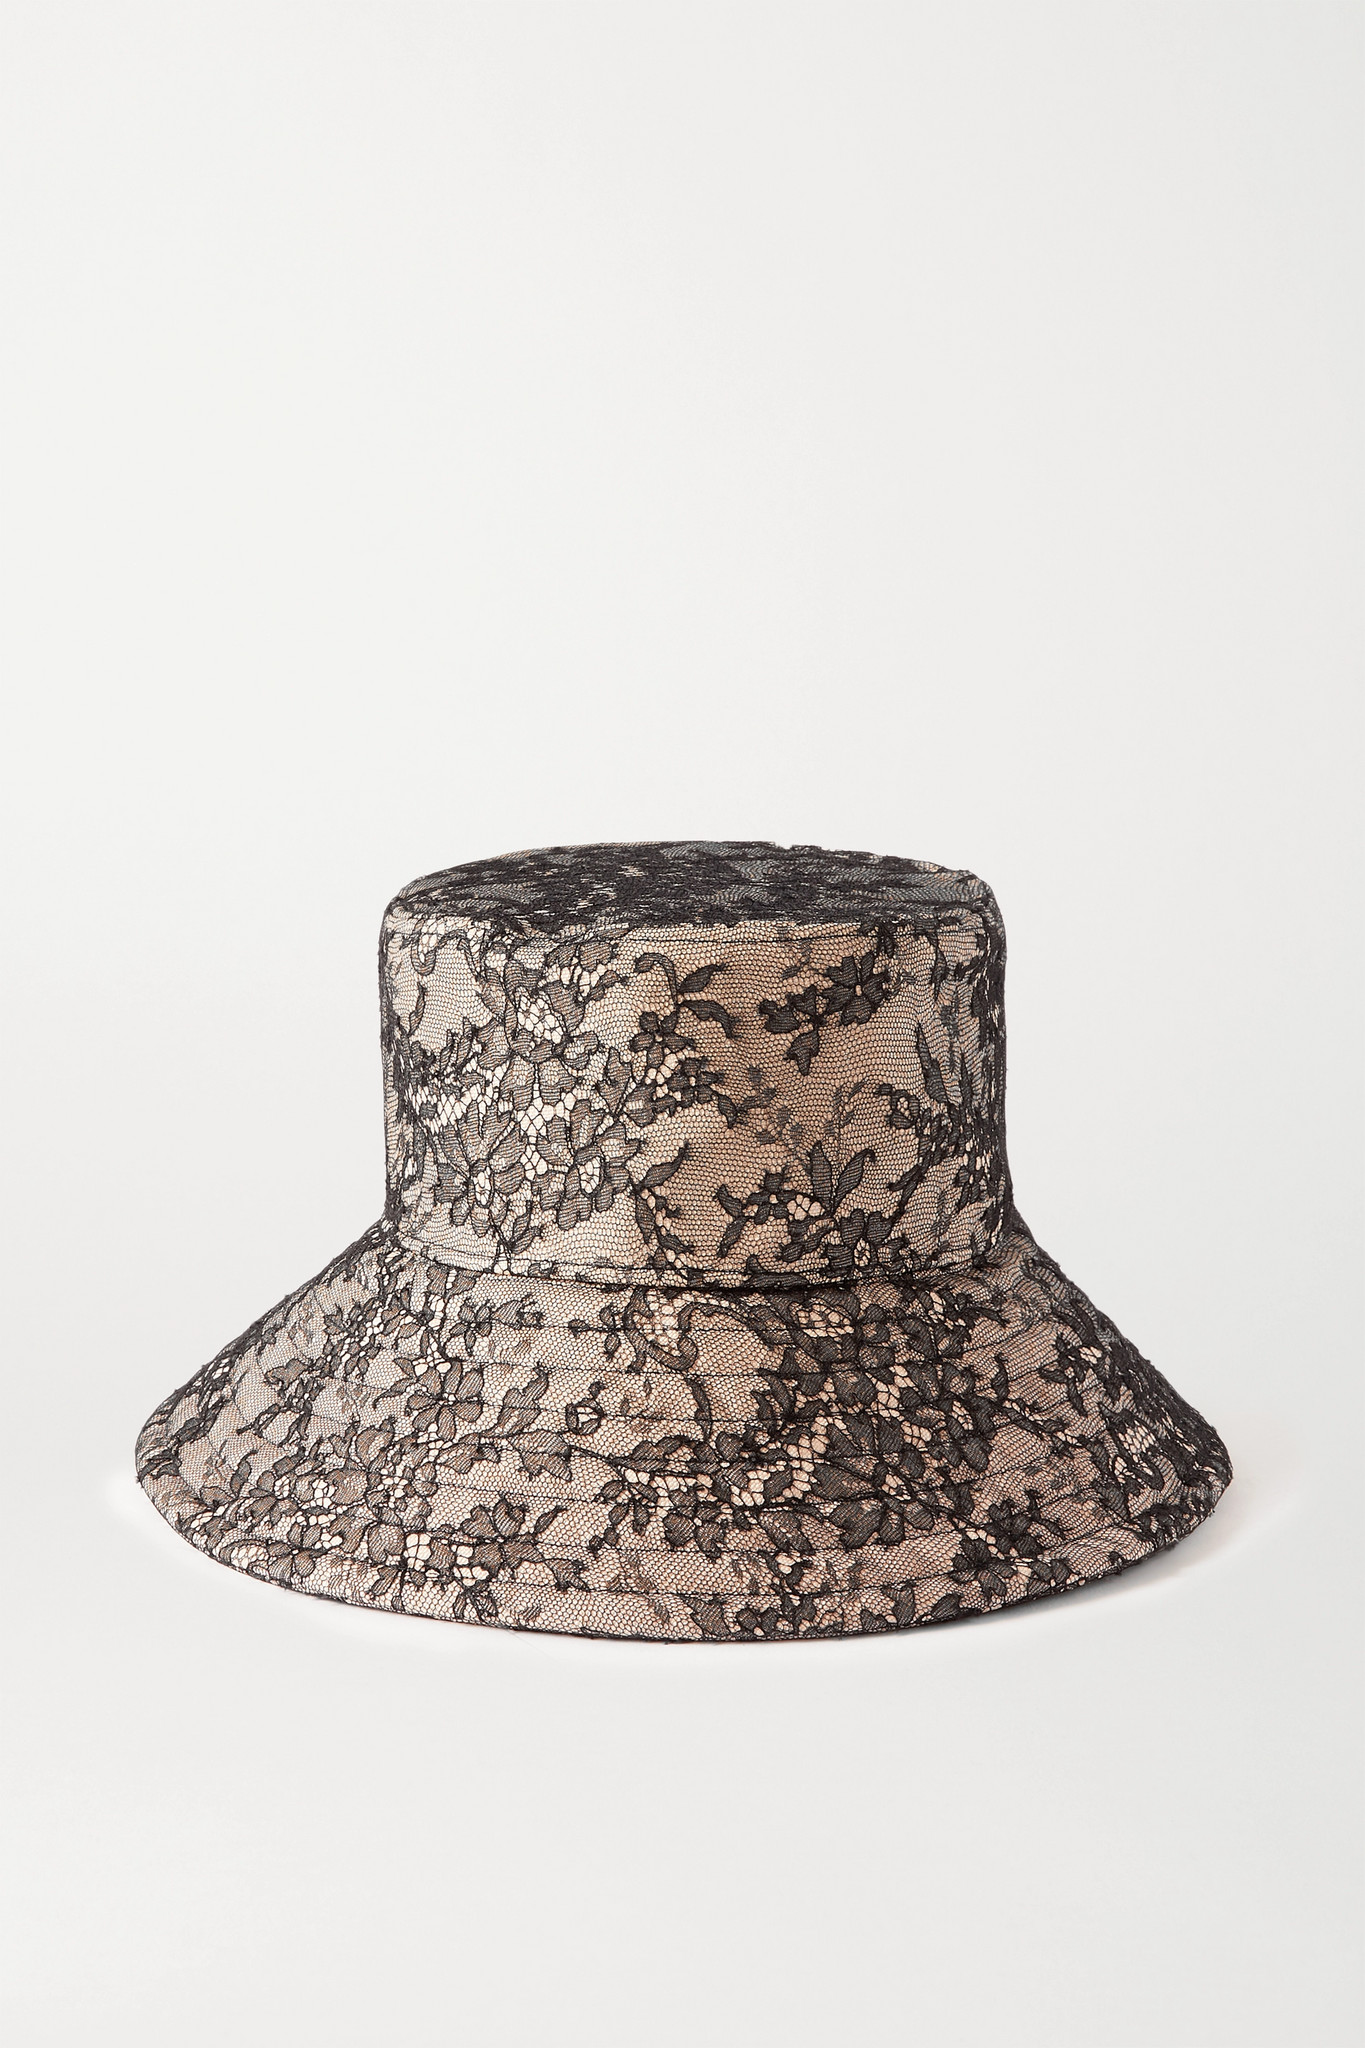 VALENTINO - Lace And Canvas Bucket Hat - Neutrals - M